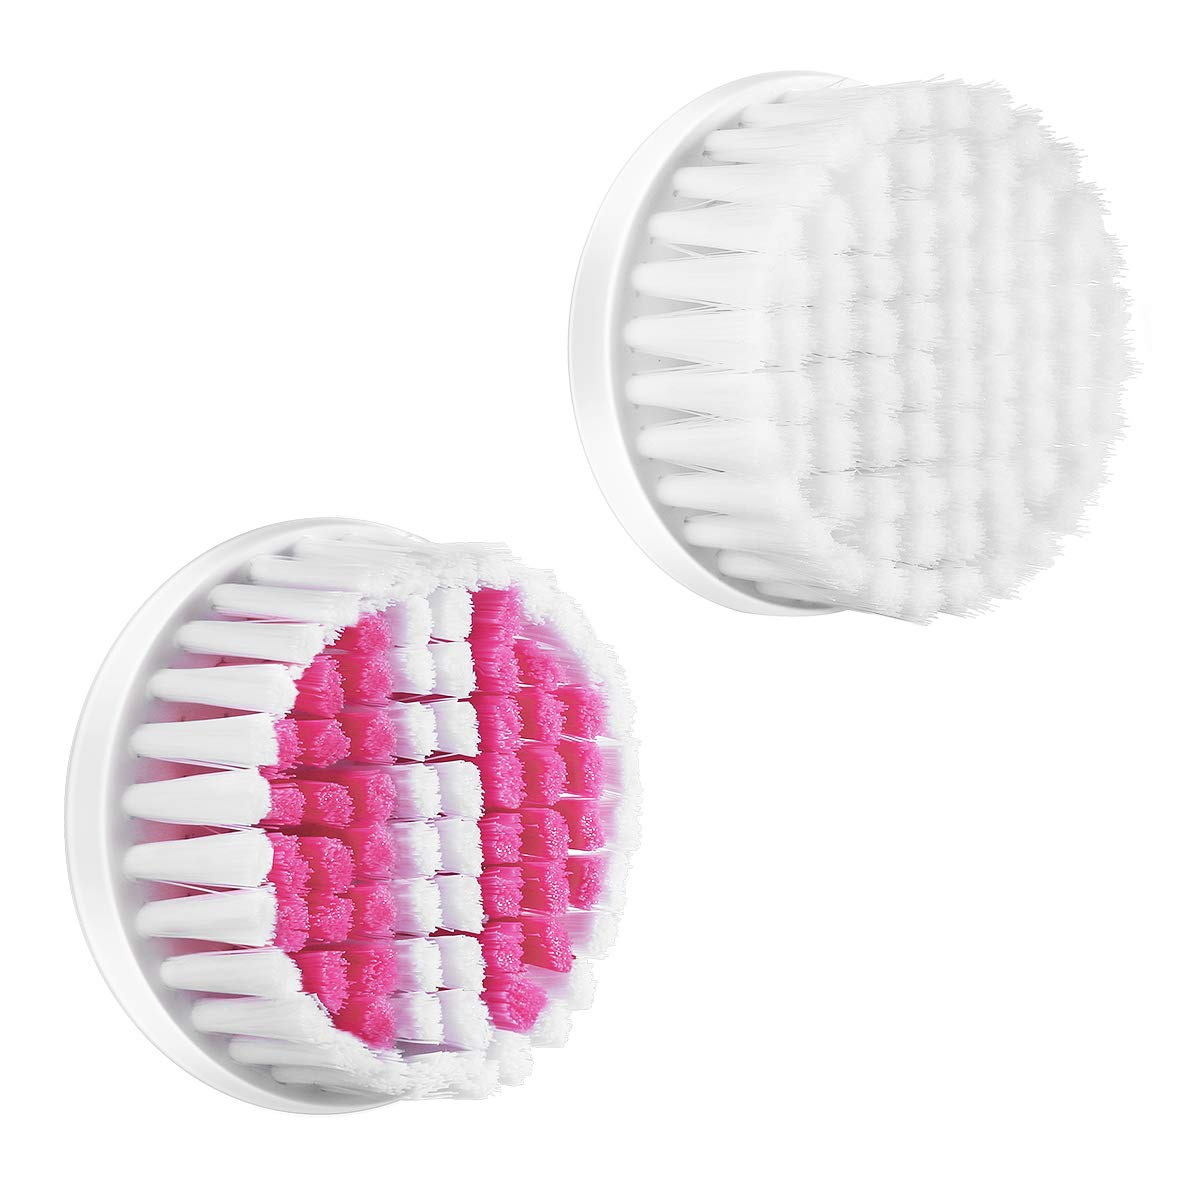 Facial Brush Heads for 4 in 1 Travel Facial Brush, Pack of 2- Pink